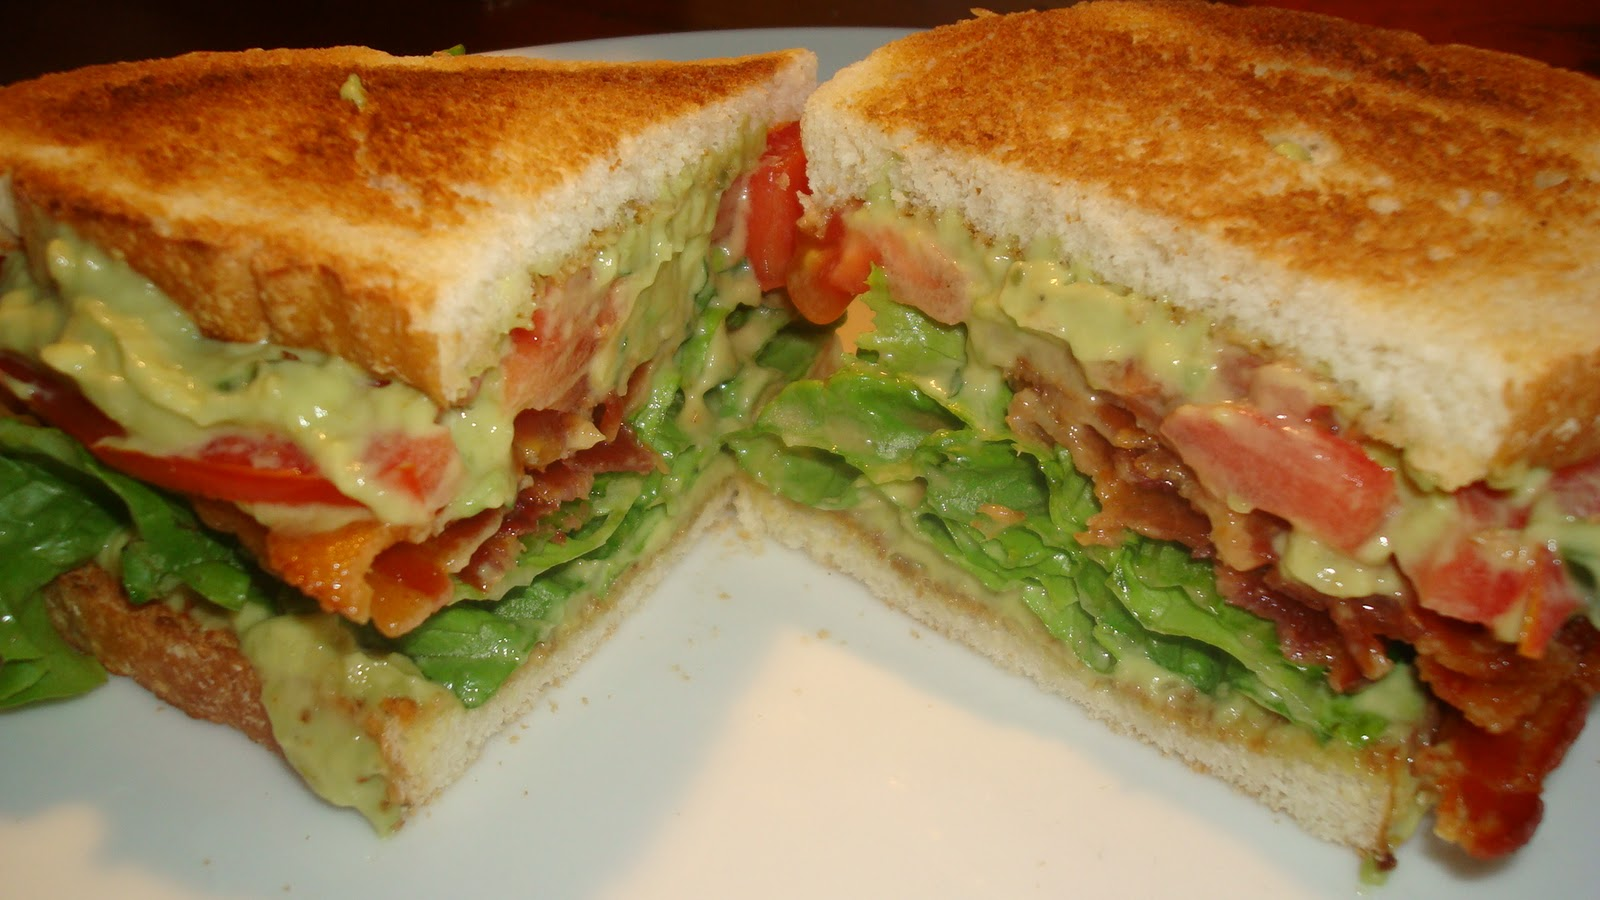 Dawn's Recipes: BLAT (bacon, lettuce, avocado and tomato)